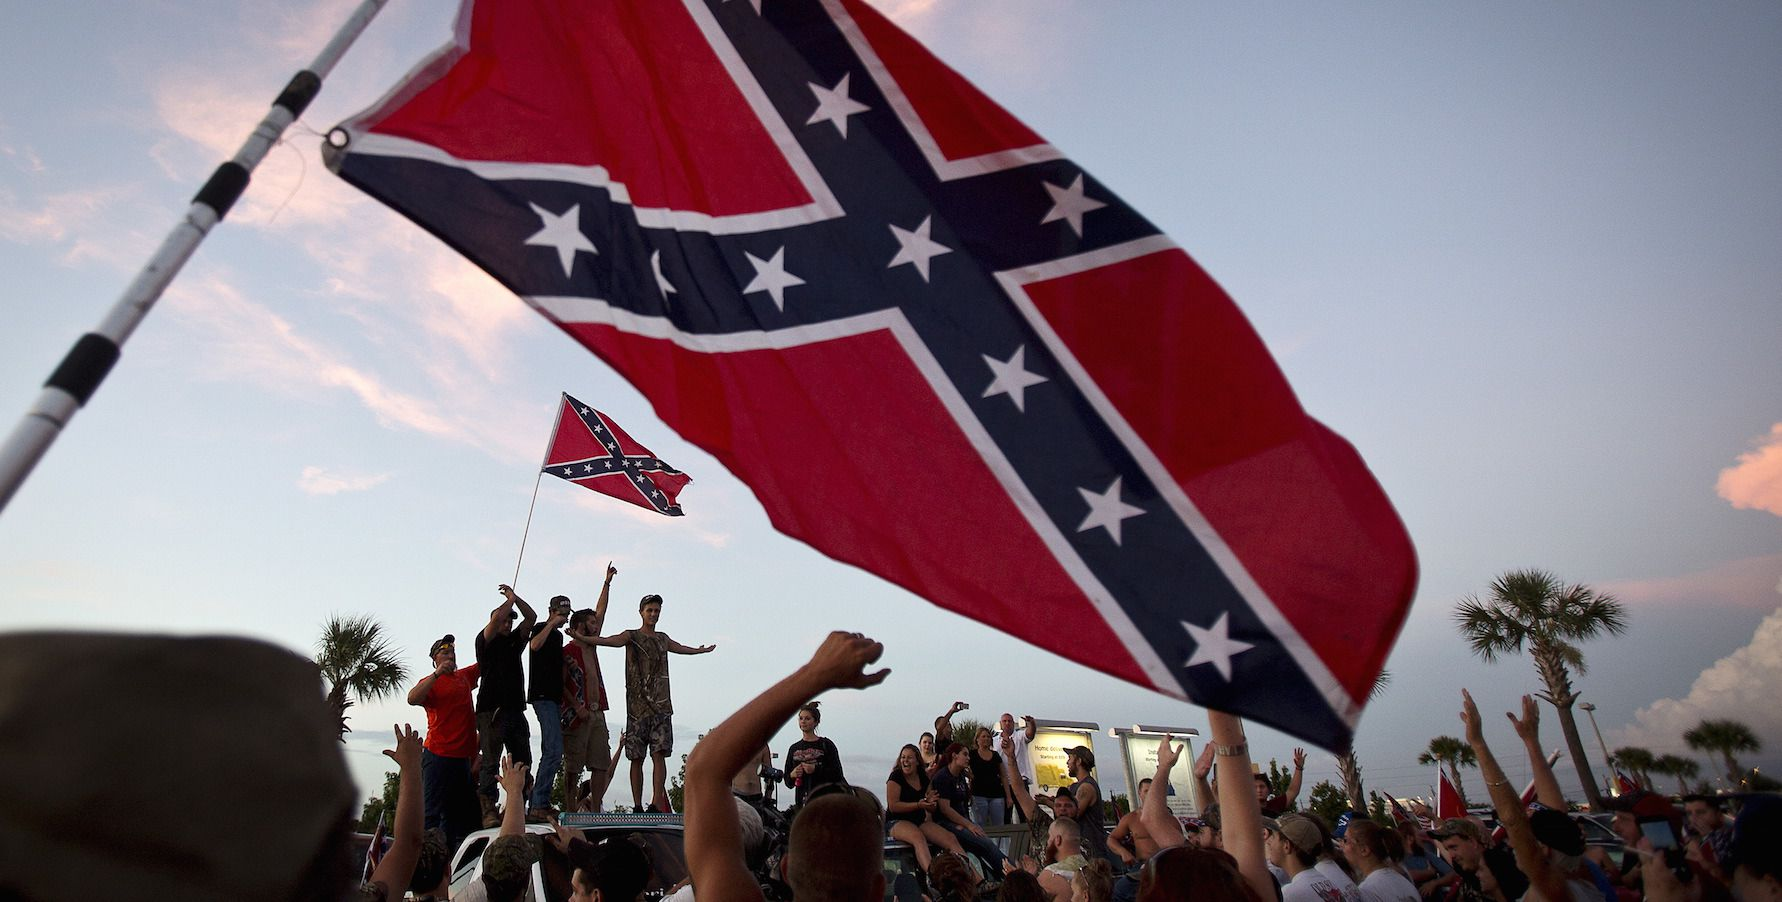 "Participants in the ""Ride for Pride"" event stand on the back of their pickup truck as they speak to an assembled crowd during the impromptu event to show their support the Confederate flag in Brandon, Hillsborough County, June 26, 2015. Several hundred people took part in the event. REUTERS/Carlo Allegri - RTX1I0AI"